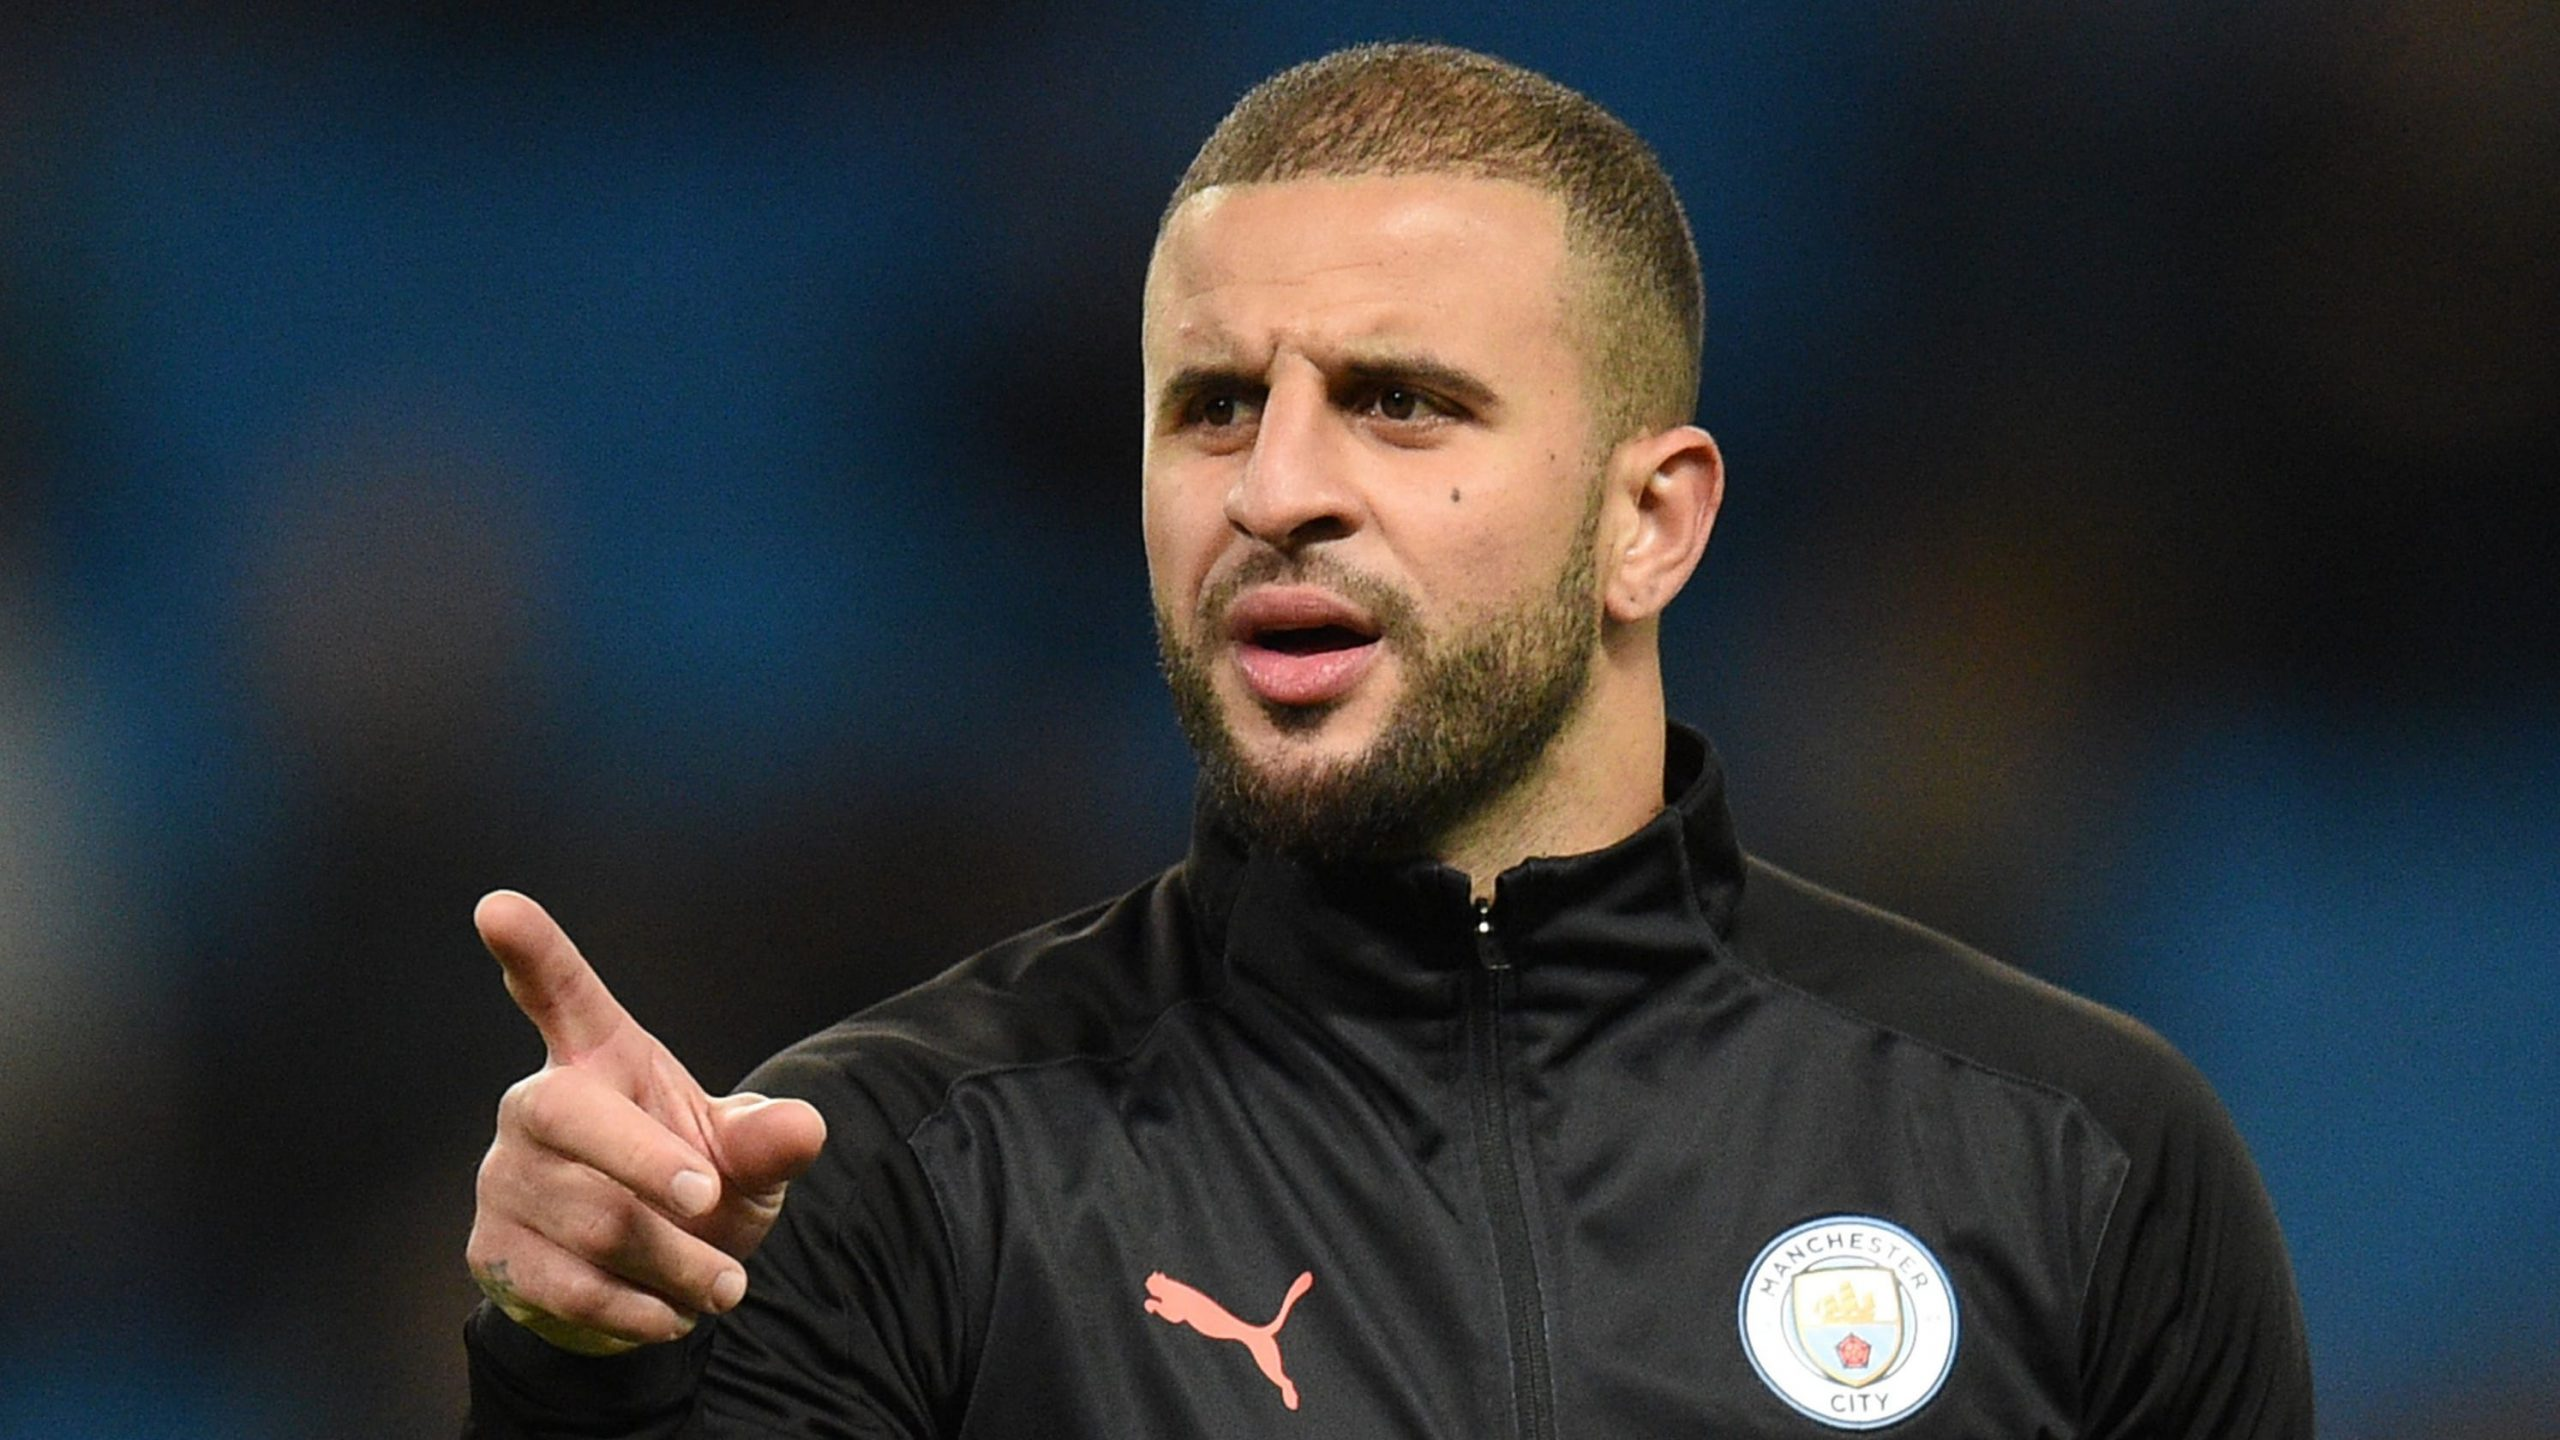 Manchester City's Kyle Walker apologizes, could face discipline for allegedly partying with sex workers during lockdown